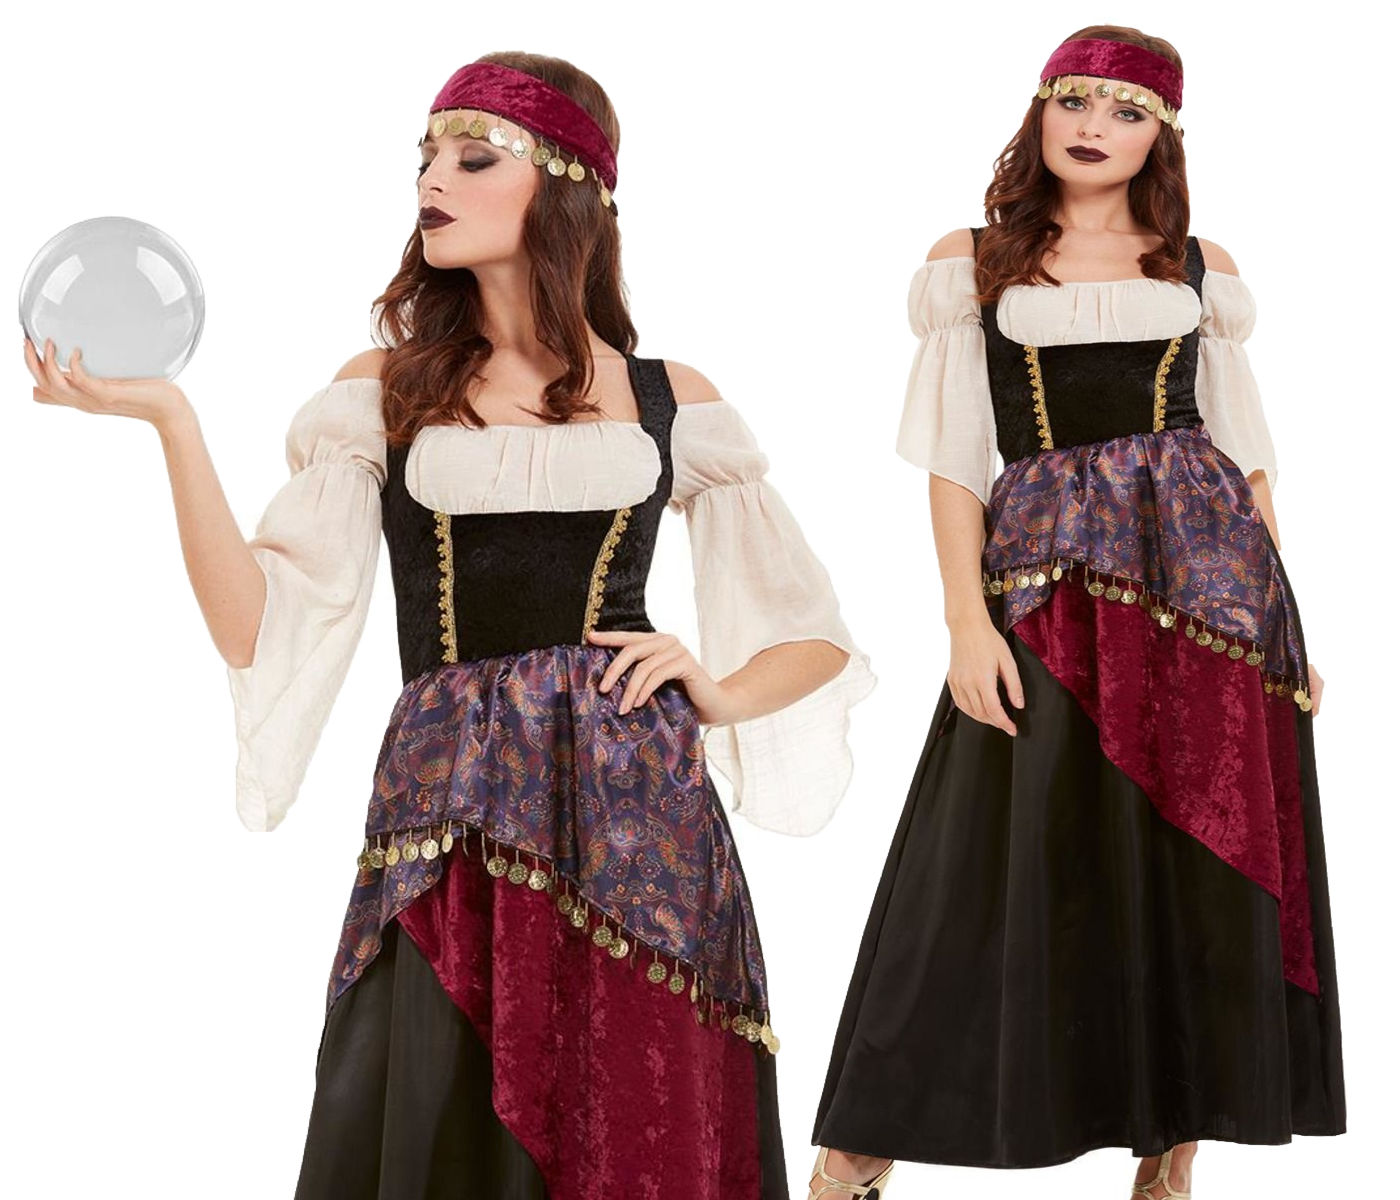 Details about Ladies Deluxe Romany Gypsy Fortune Teller Fancy Dress Outfit  Womens Costume